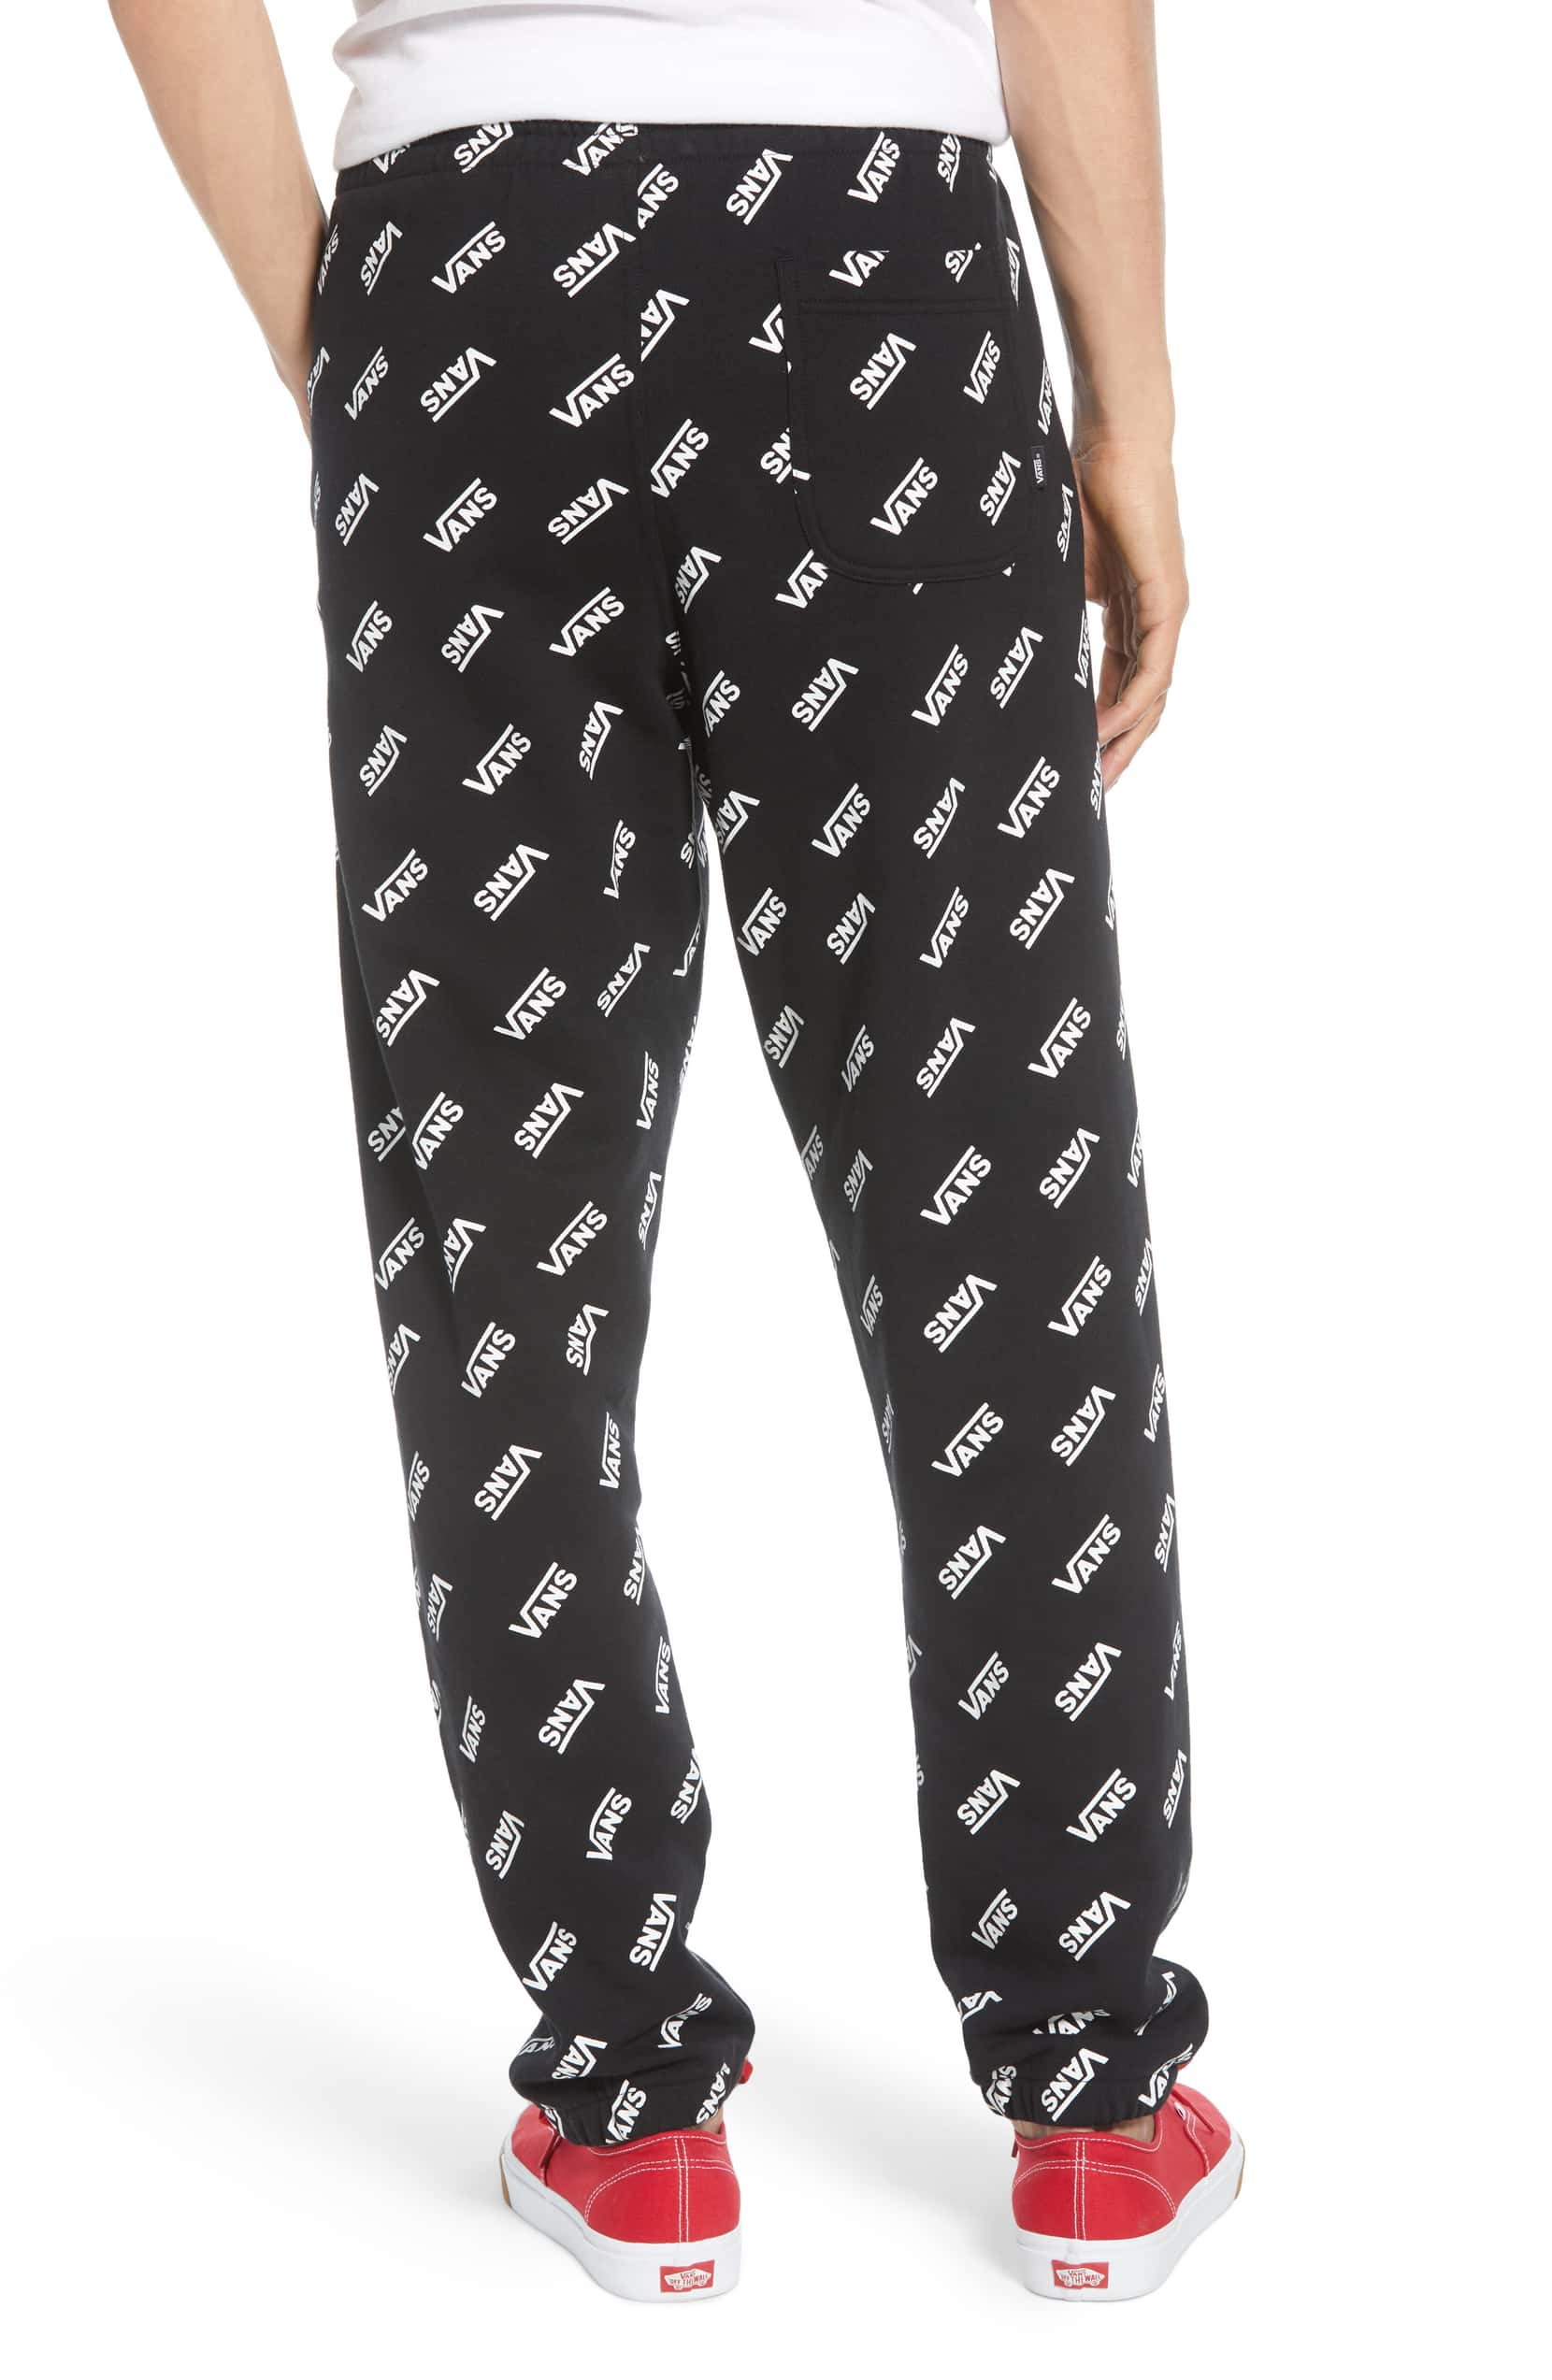 Vans Distorted Fleece Sweatpants Mens VN0A45ASBLK